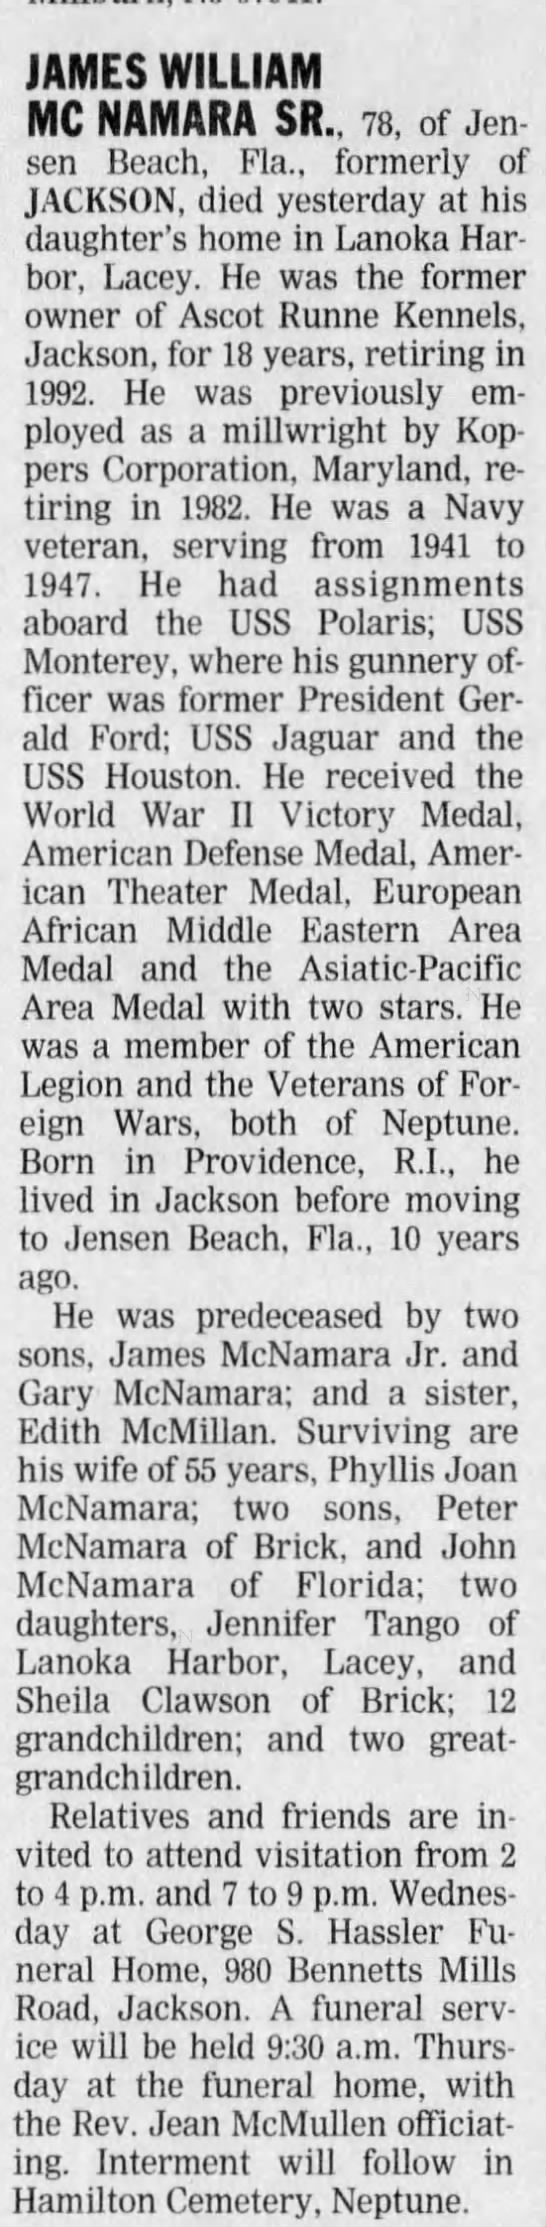 James W McNamara Sr Obit 30 Apr 2002